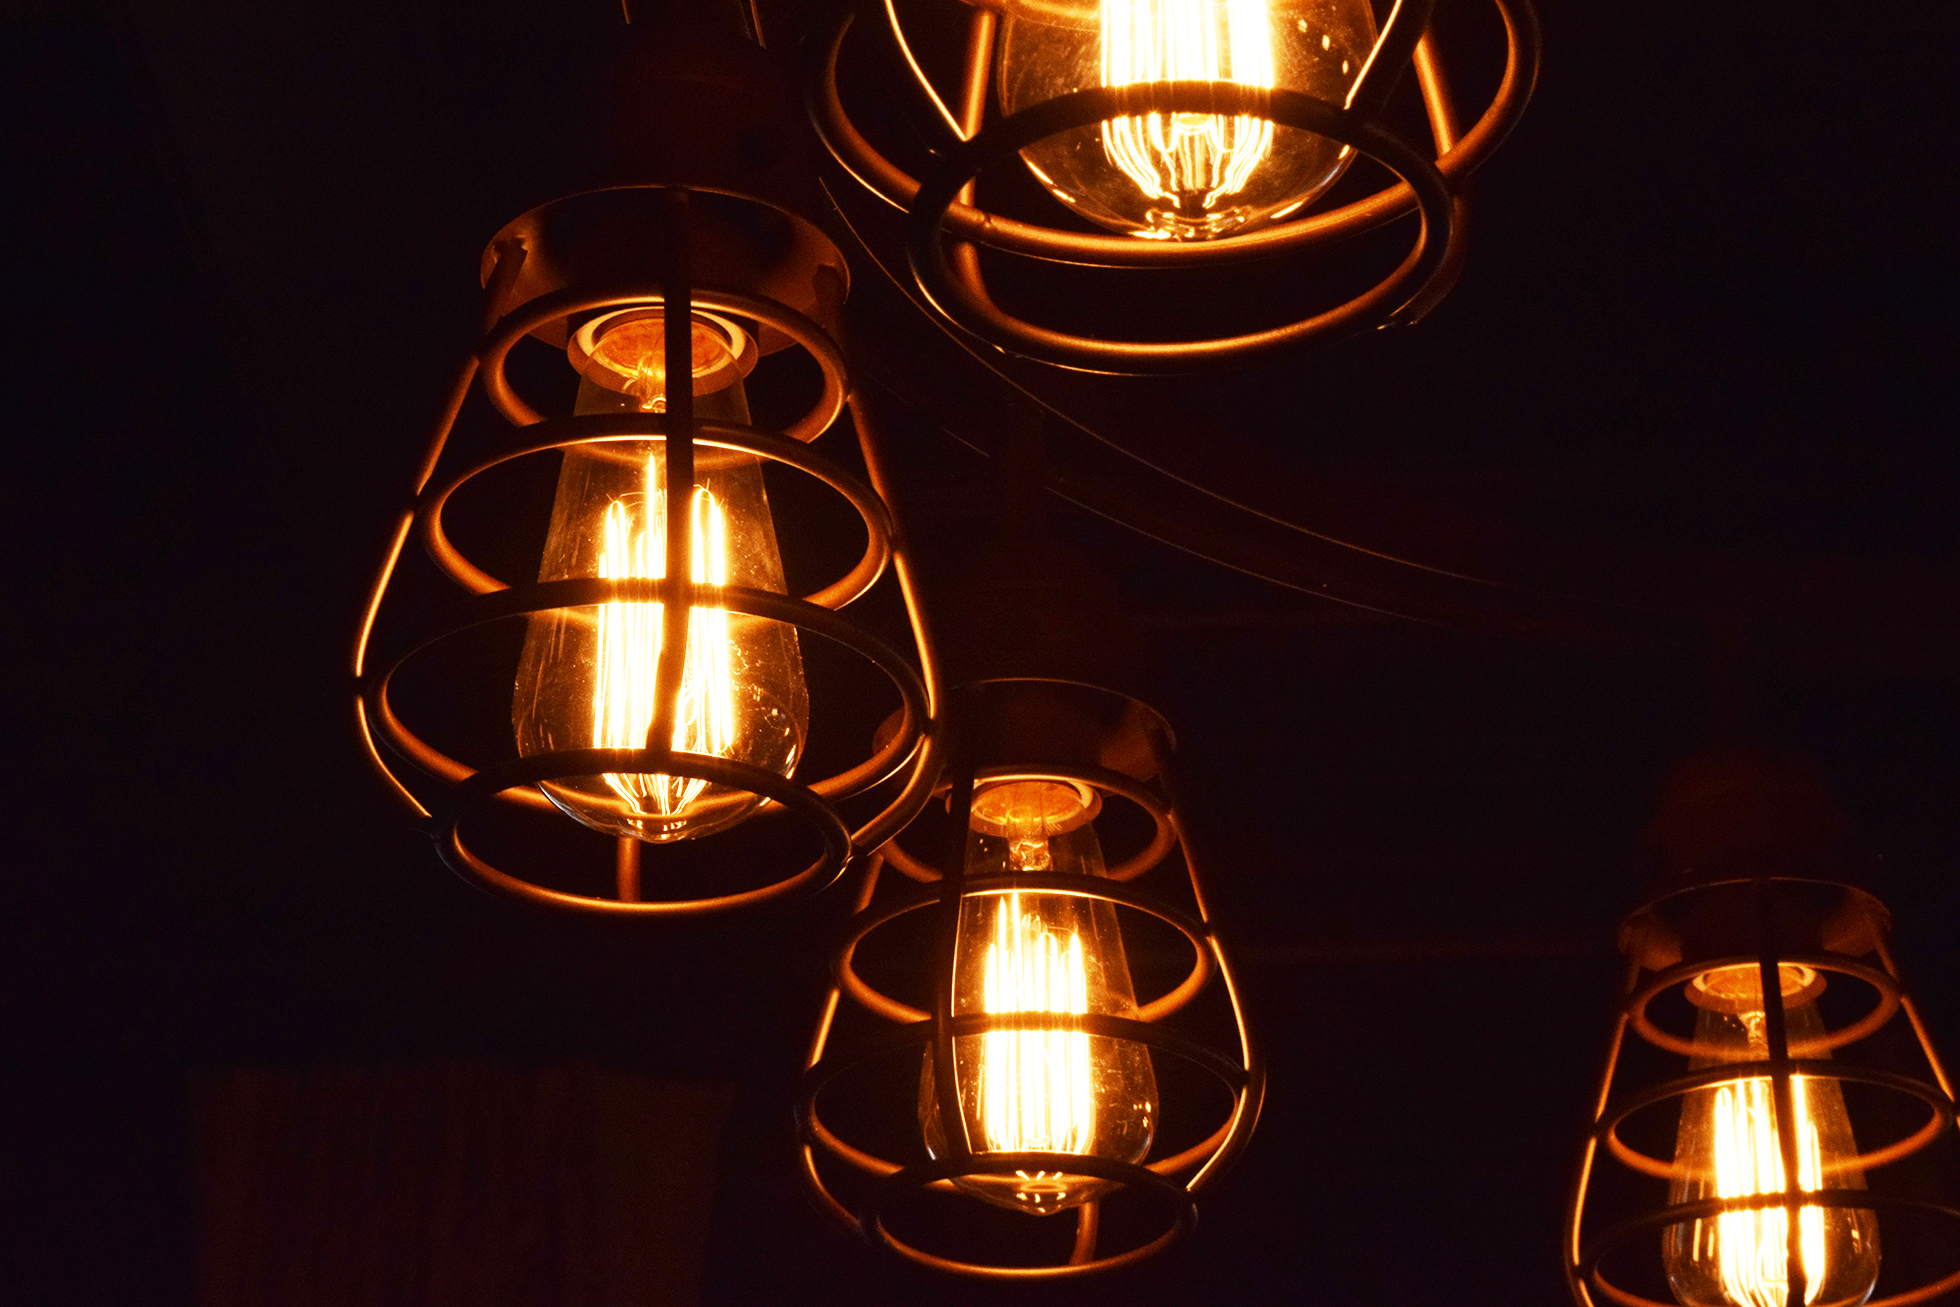 Four cage lights in a dark room | House-Selling Tips